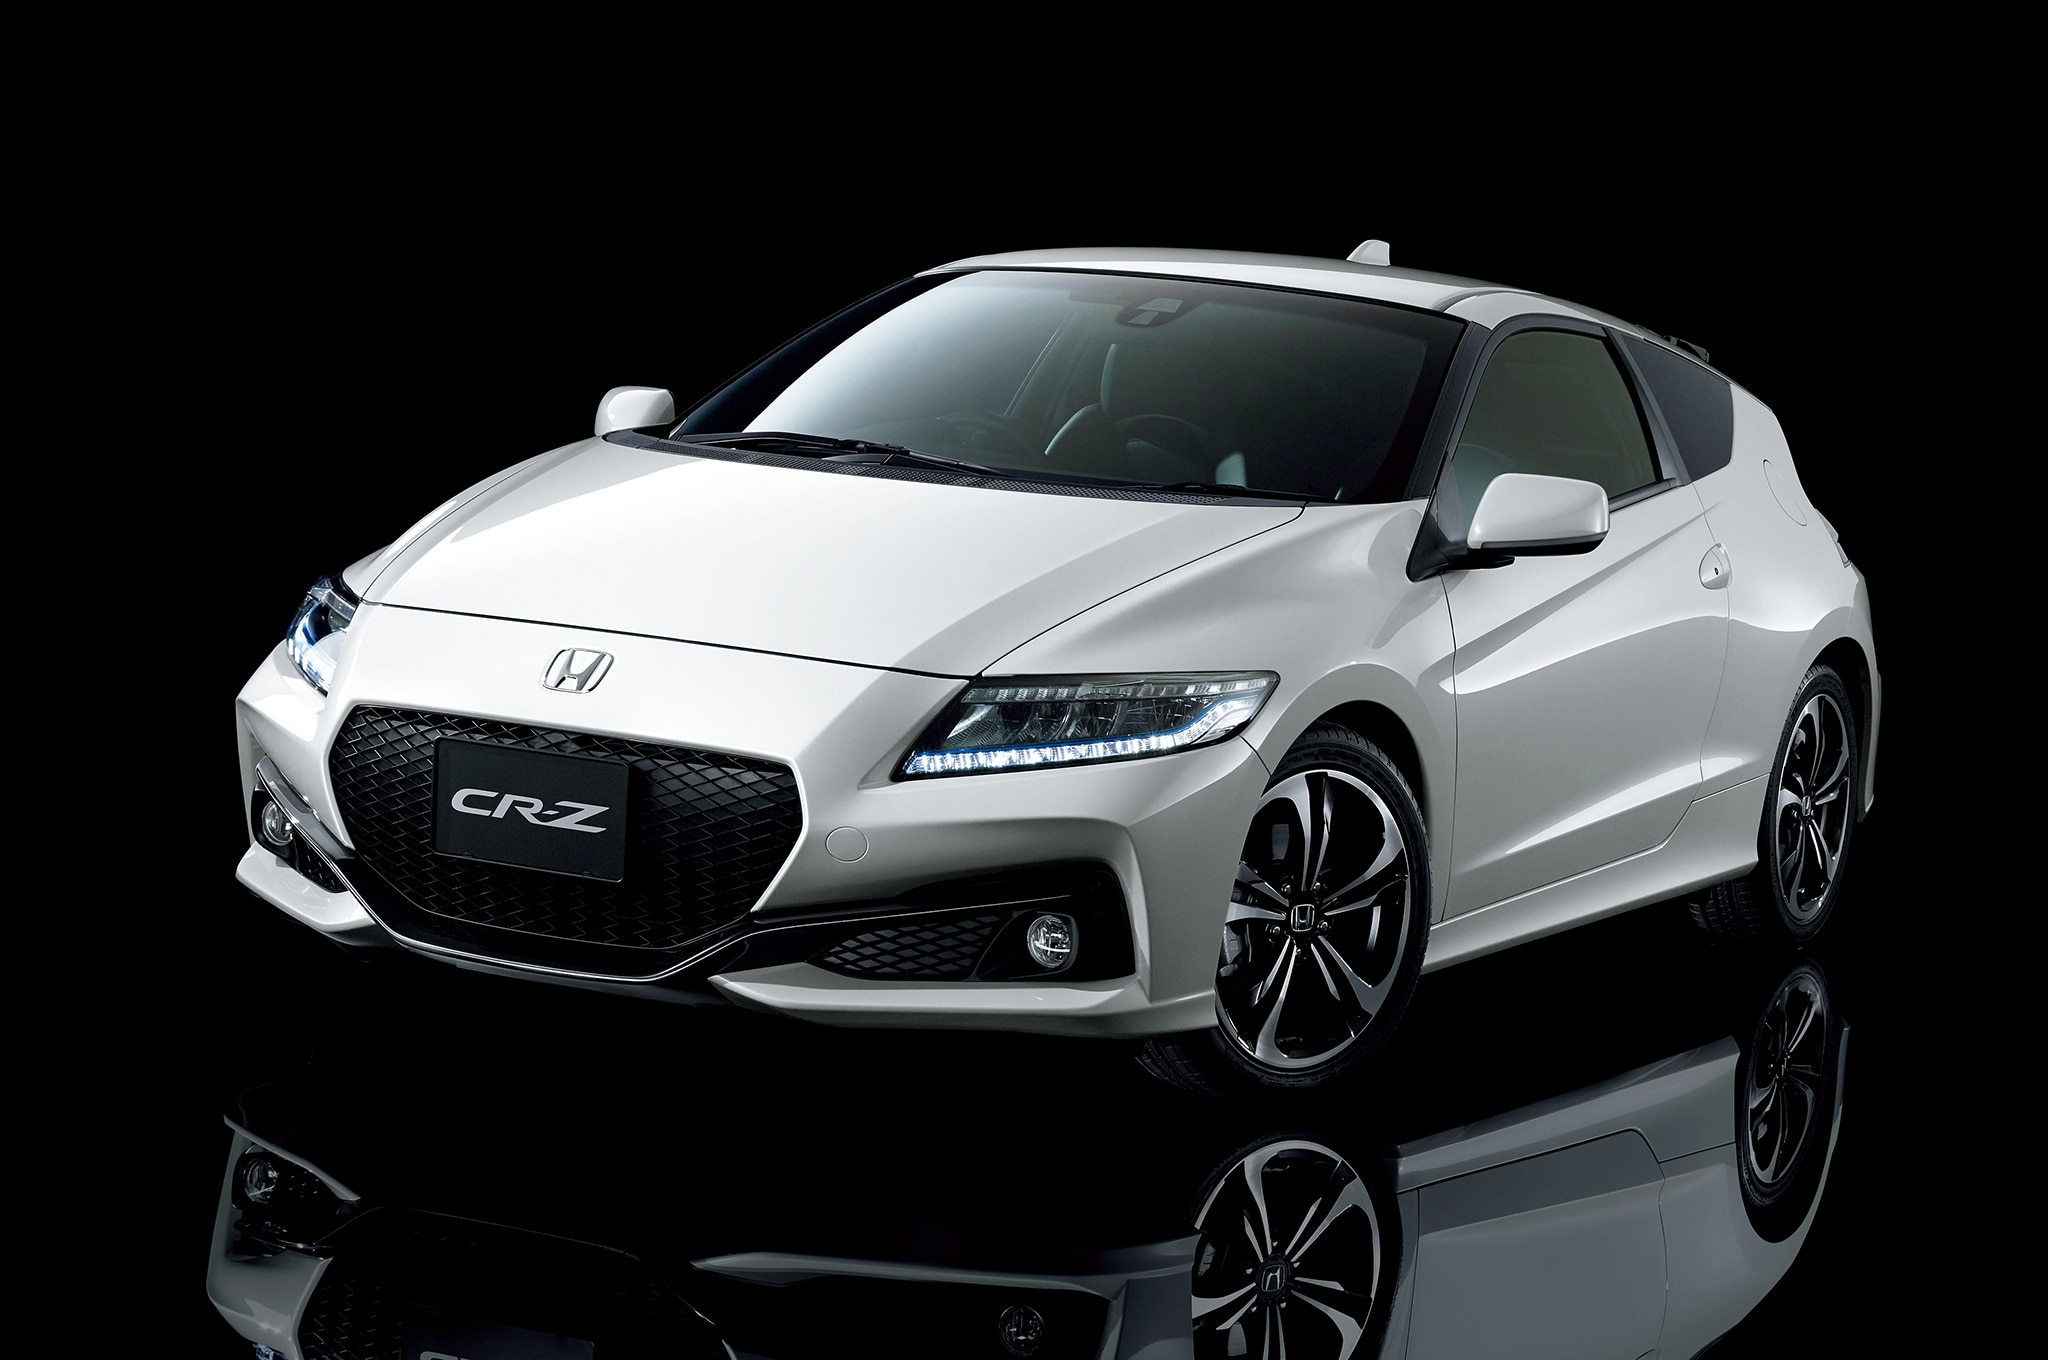 5 Hp Electric Motor >> Honda CR-Z Hybrid Refreshed for Japan